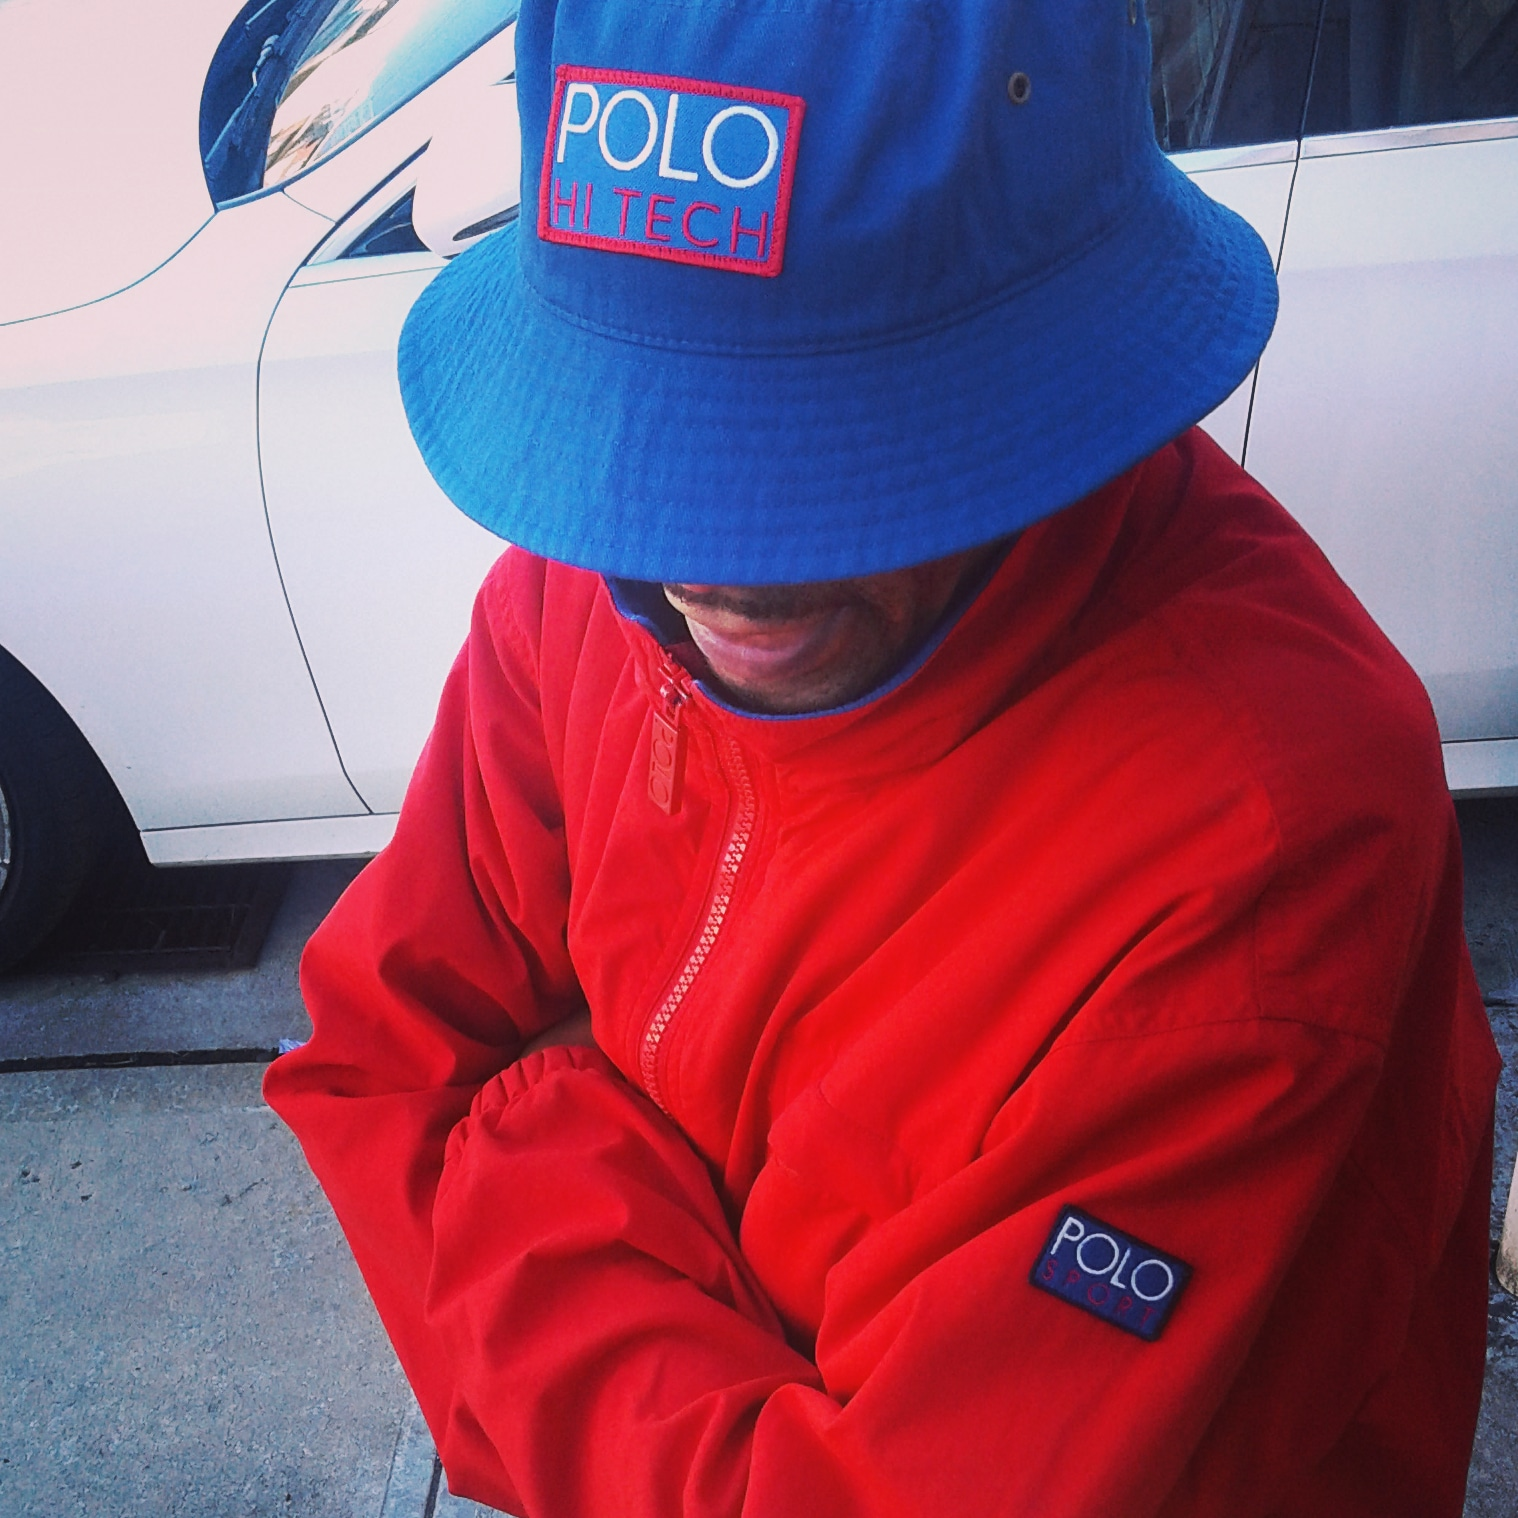 "Polo Hi Tech ""Patch"" Bucket Hat"